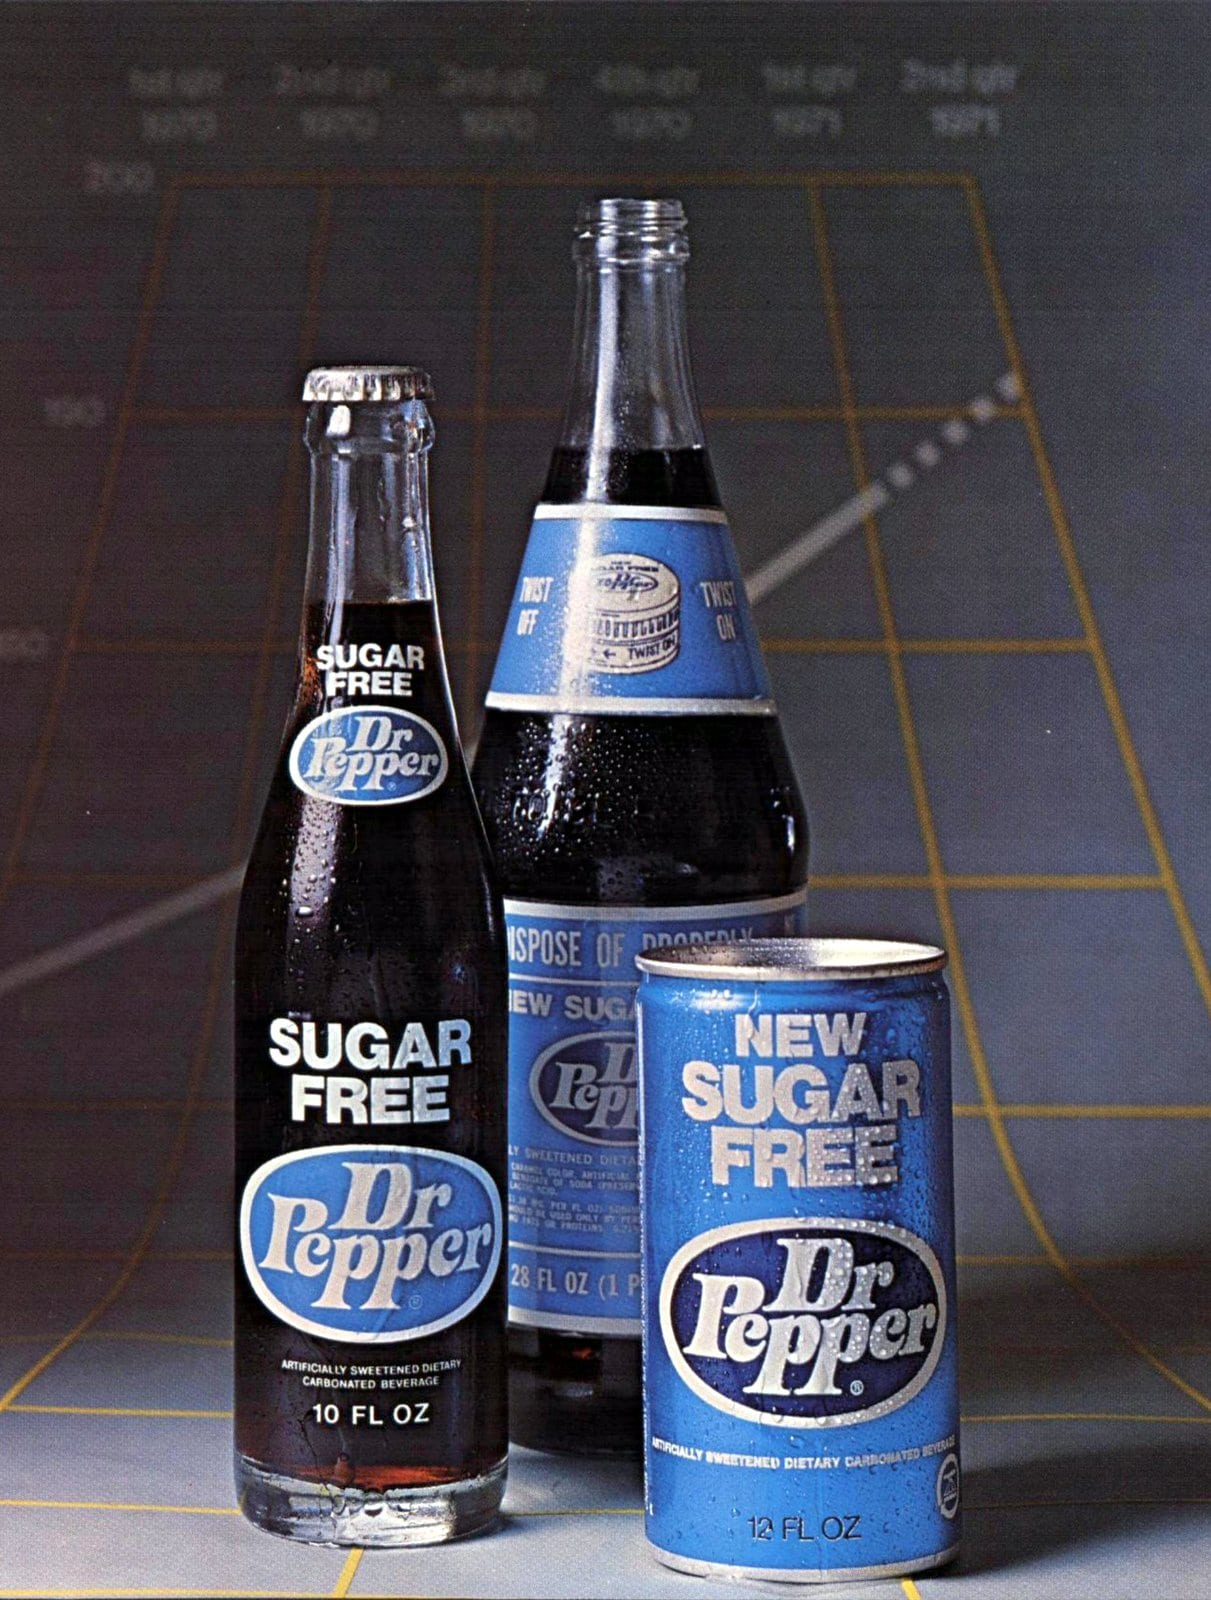 Sugar Free Dr Pepper - Packaging from 1971